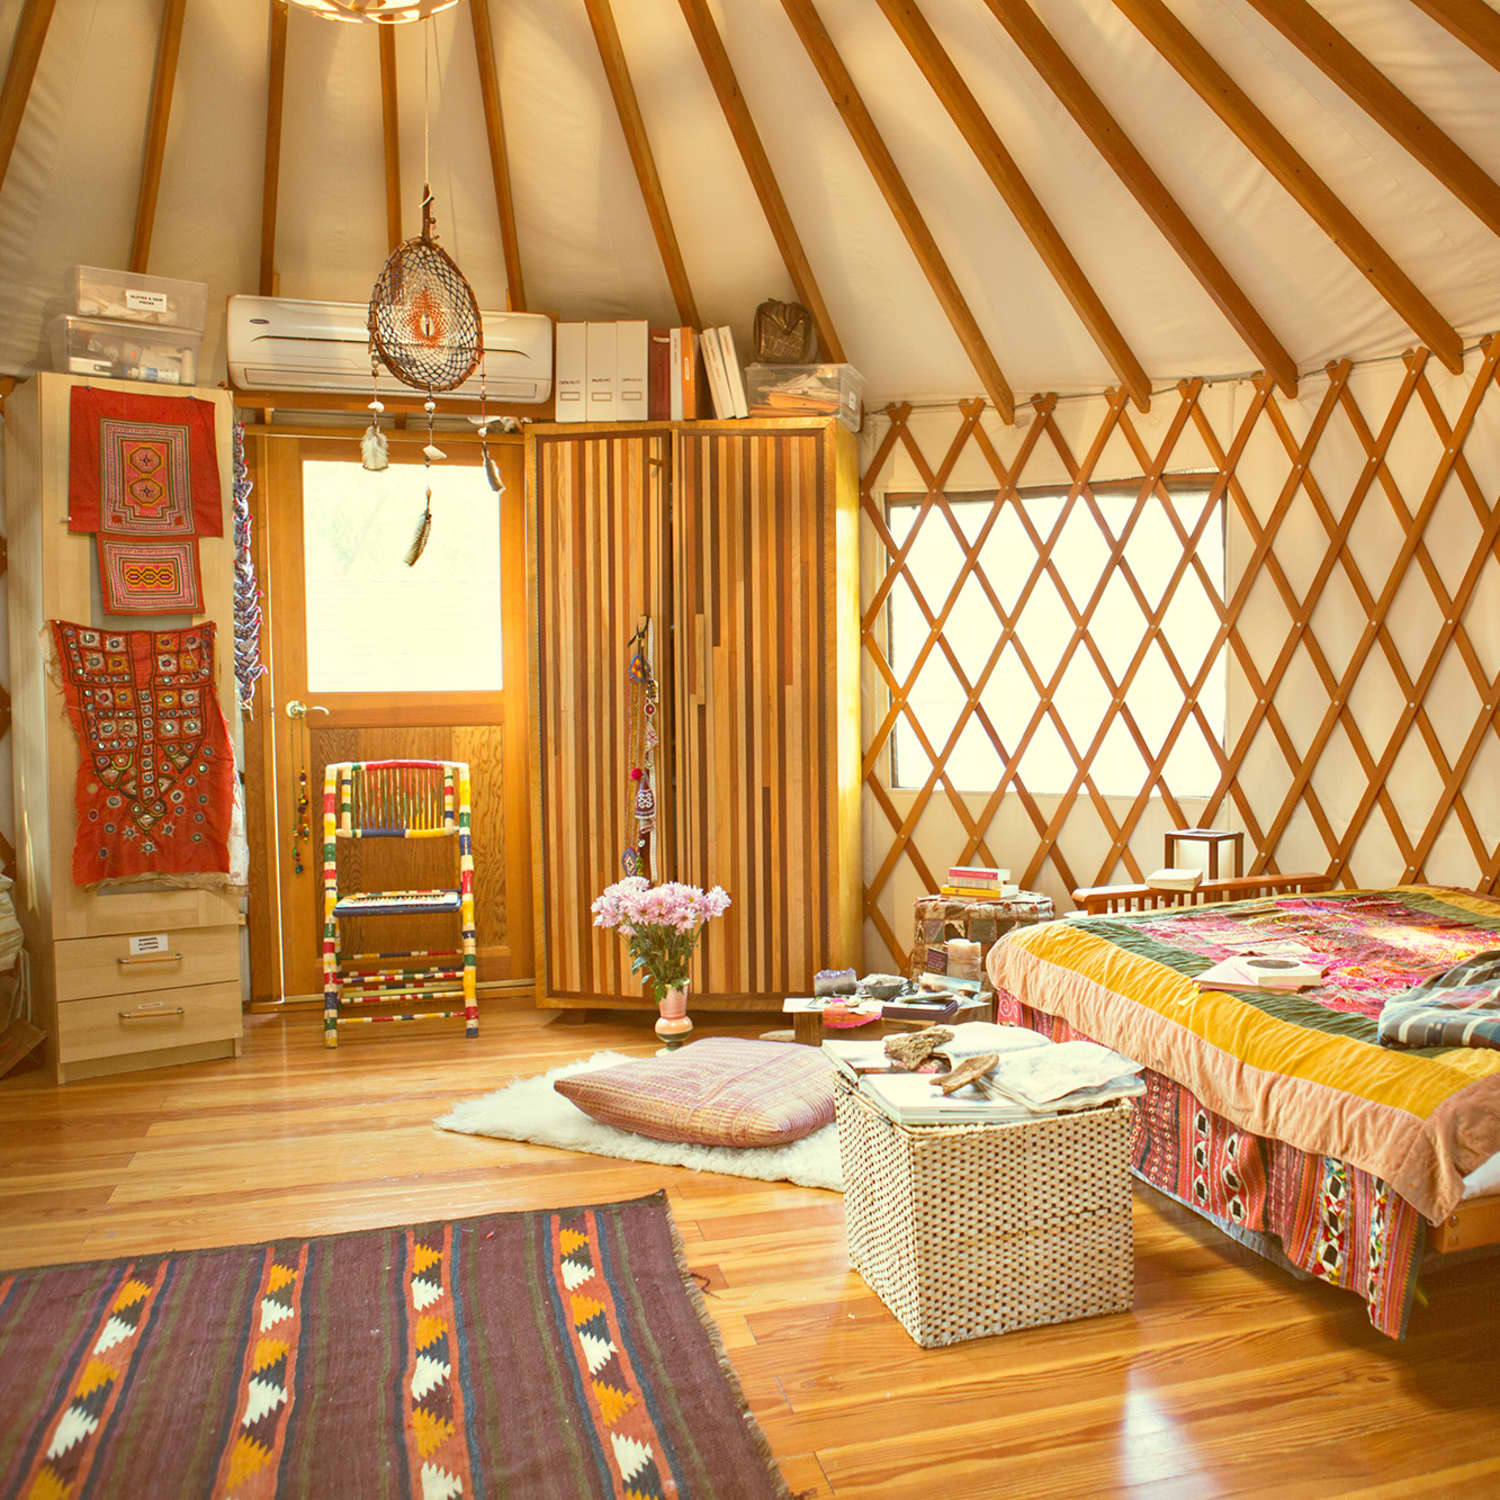 The 7 Best Sources To Buy Yurt Kits Apartment Therapy View our yurt cost comparison chart to see for yourself! the 7 best sources to buy yurt kits